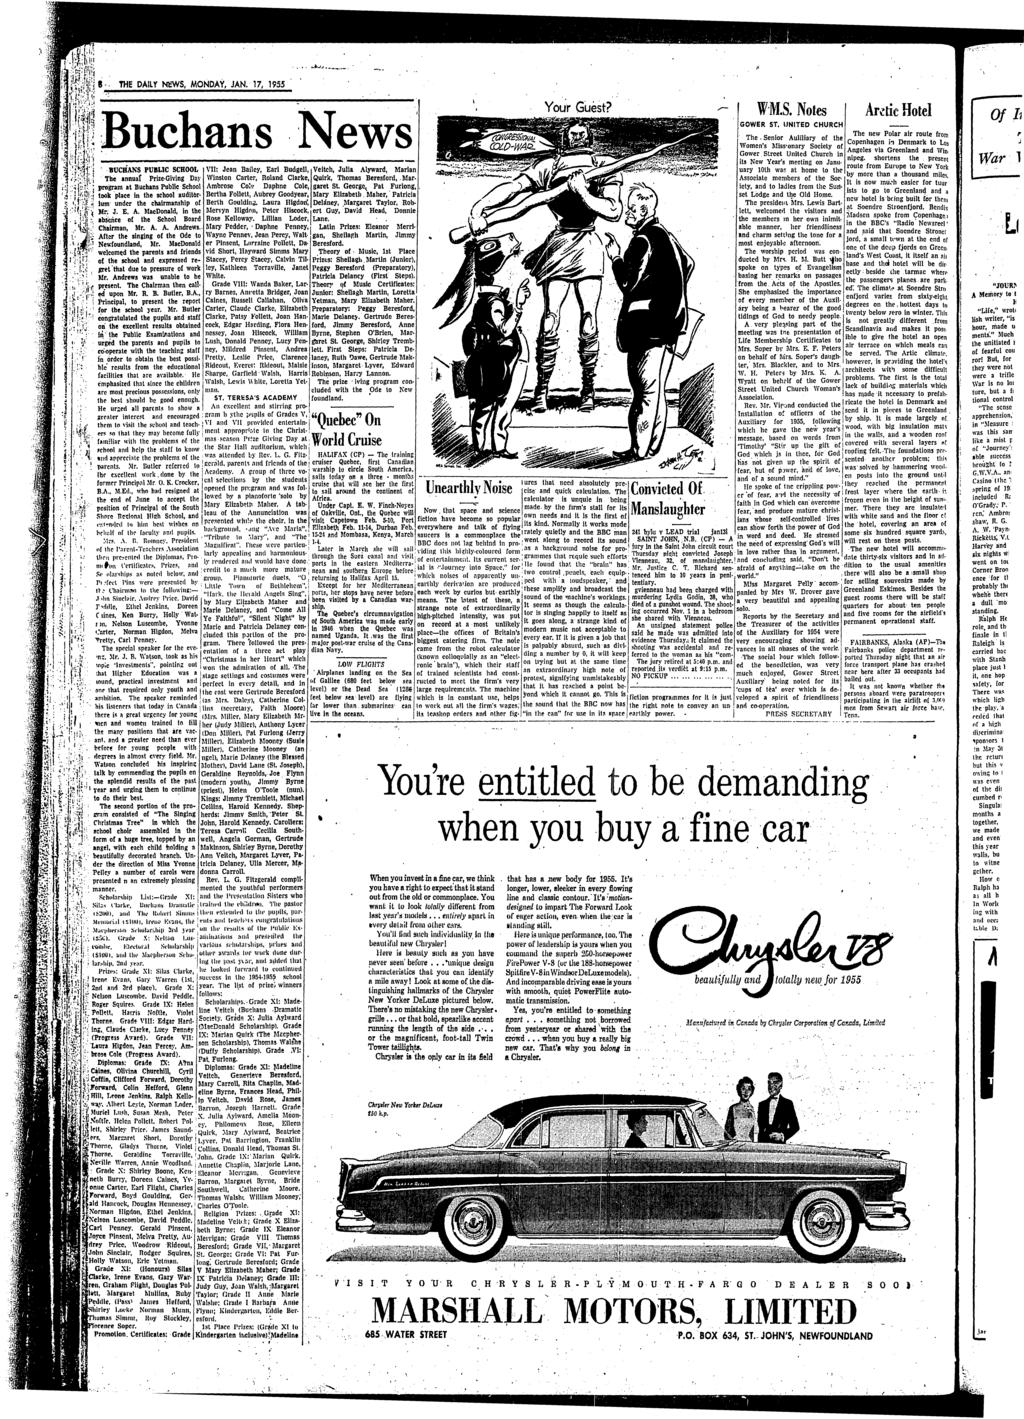 The Daily News Price Vol 62 No 13 St Johns Newfoundland Starter And Anti Creep Circuit Wiring Diagram For 1953 Studebaker Champion Commander Daly N1 Ws Monday Jan 17 1955 W Ms Notes Buchans